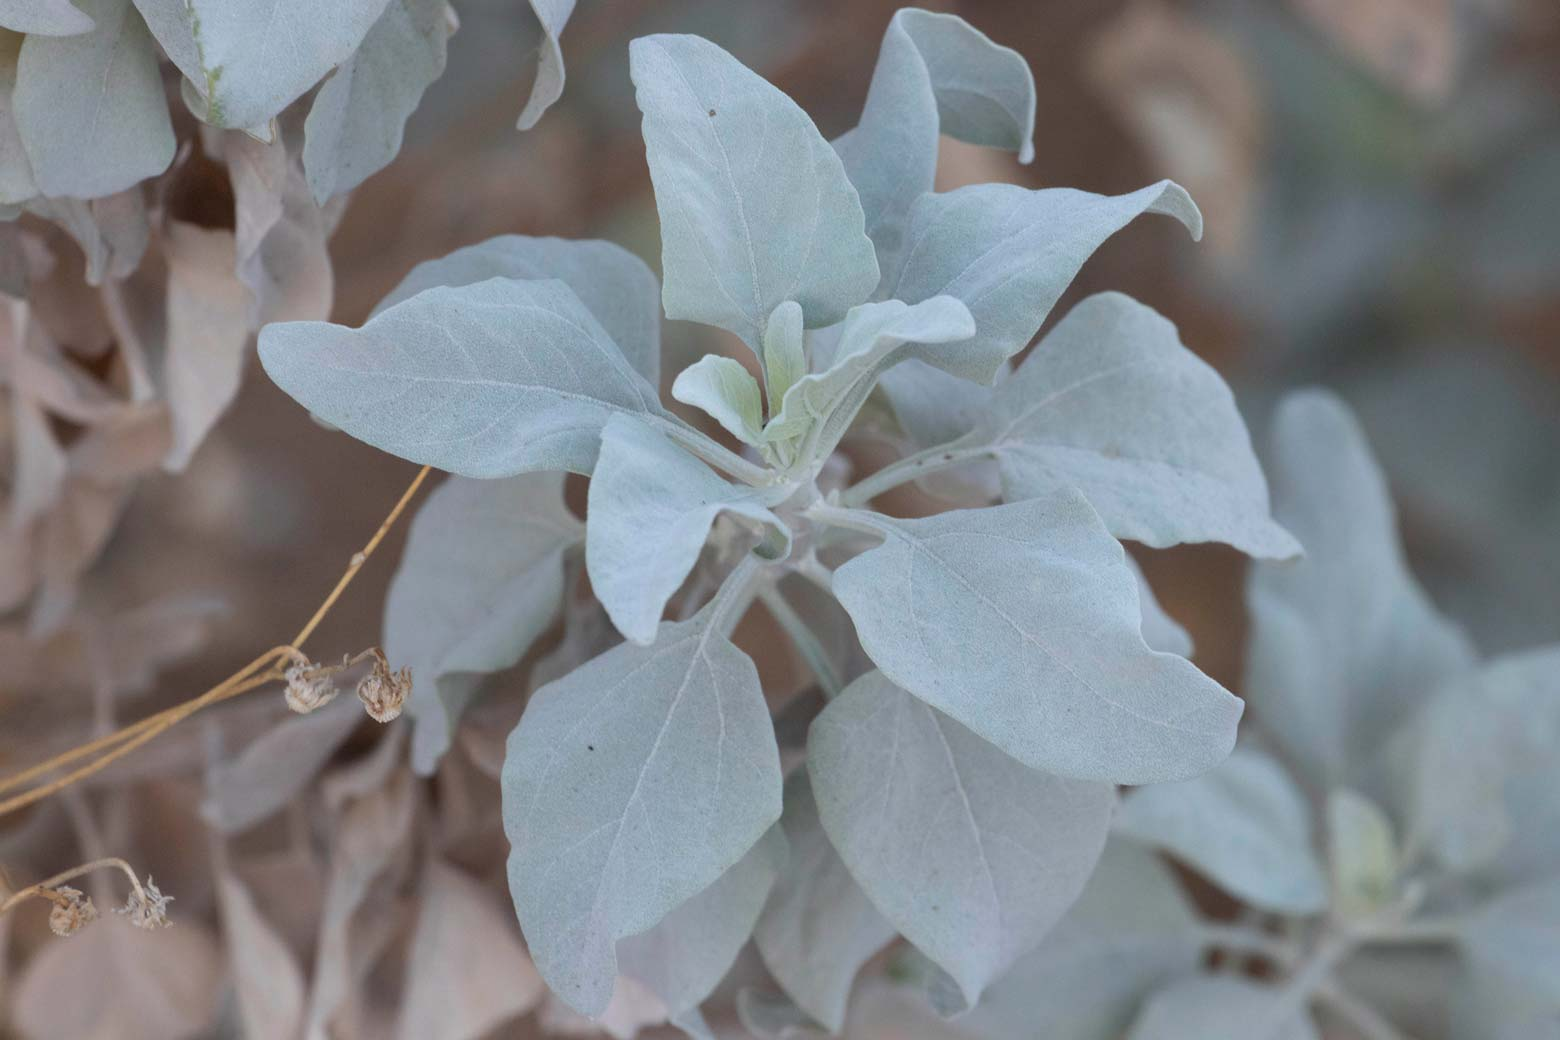 A close up of the leaves of a Brittlebush.